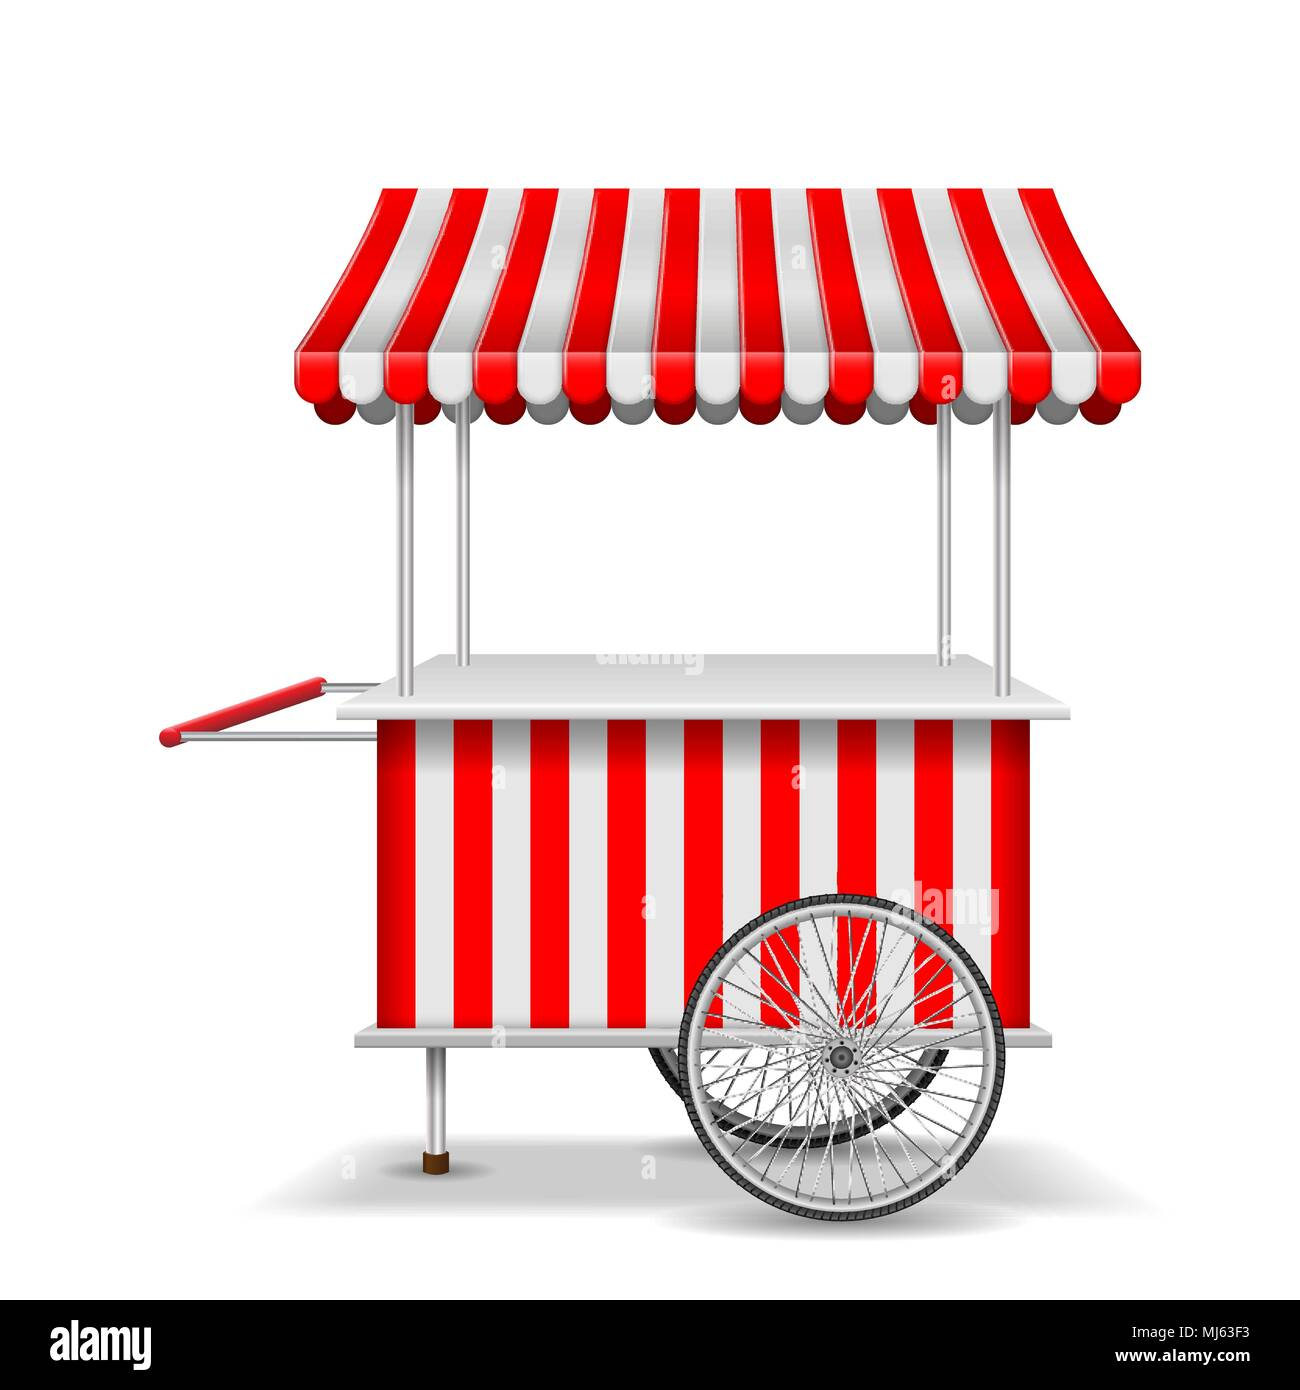 Kiosk Cut Out Stock Images & Pictures - Alamy